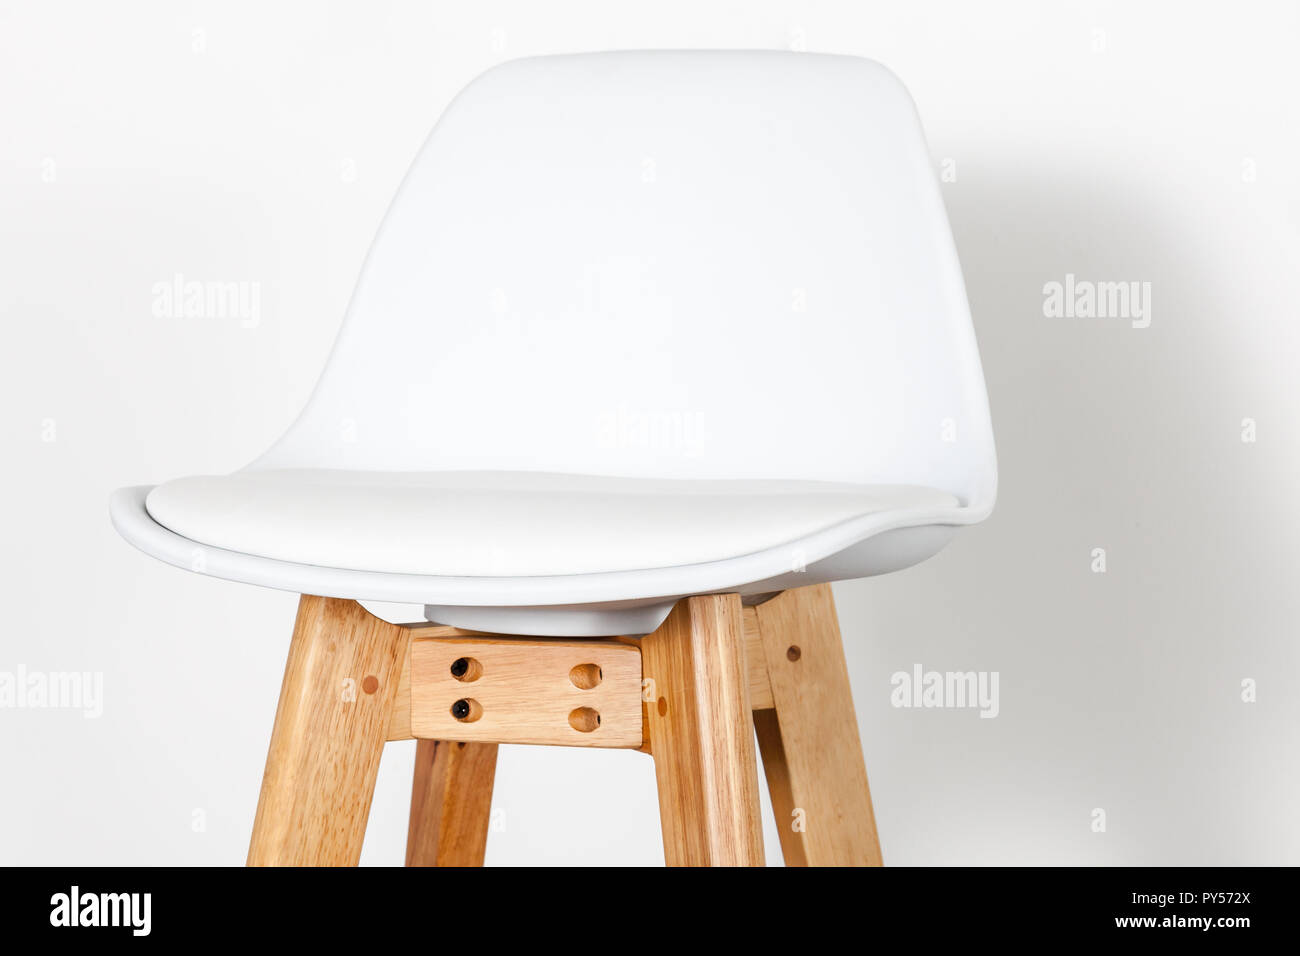 details of a white footstool - Stock Image